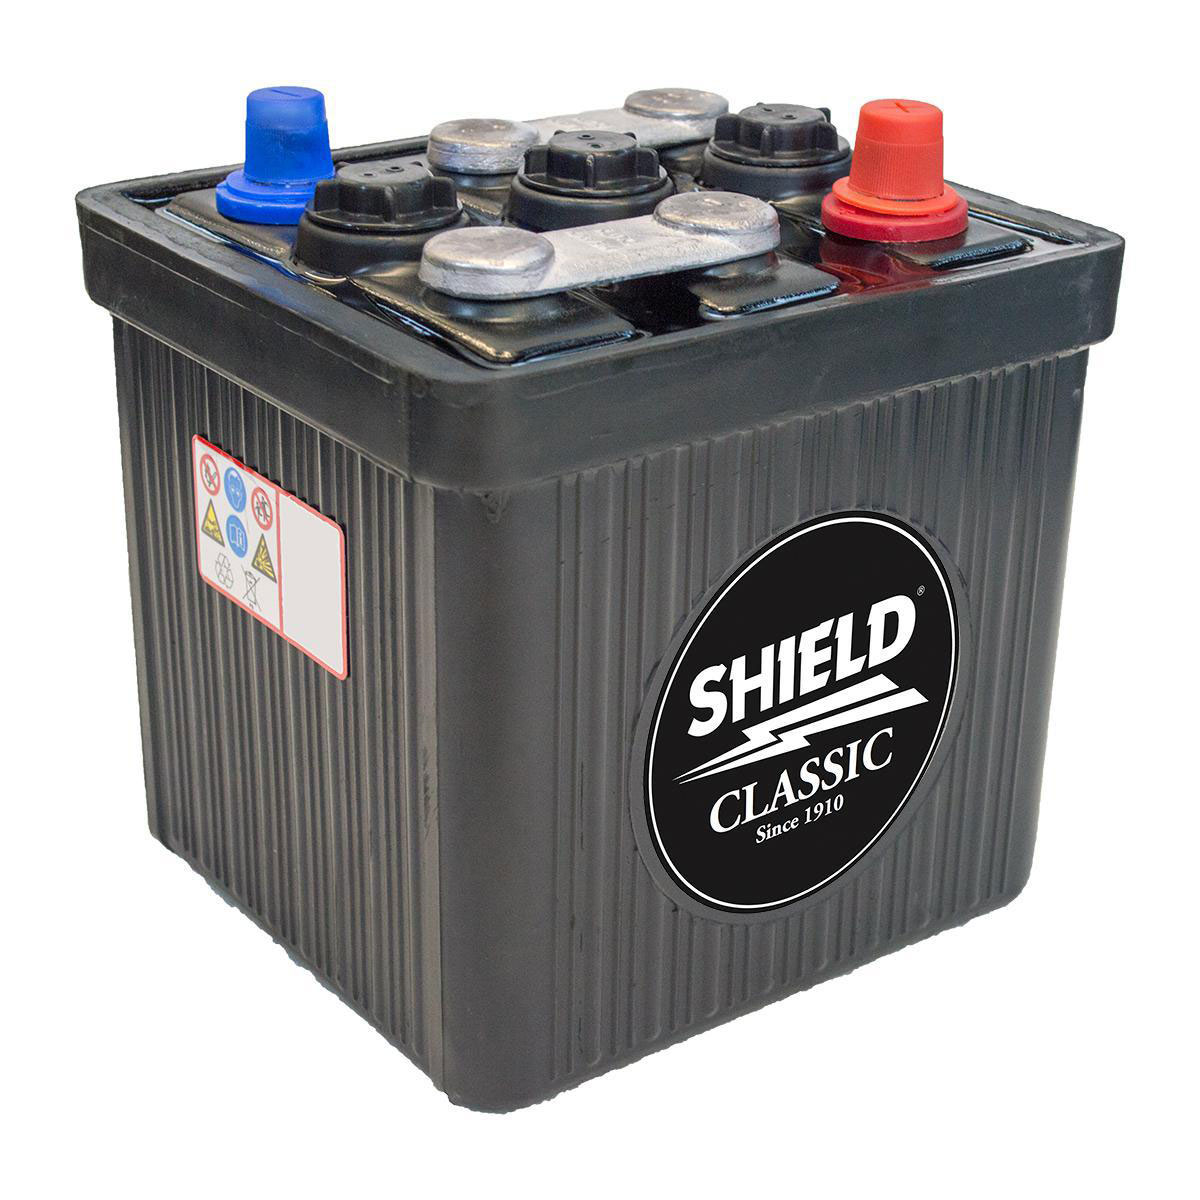 Shield-401-6v-Classic-Car-Battery.jpg